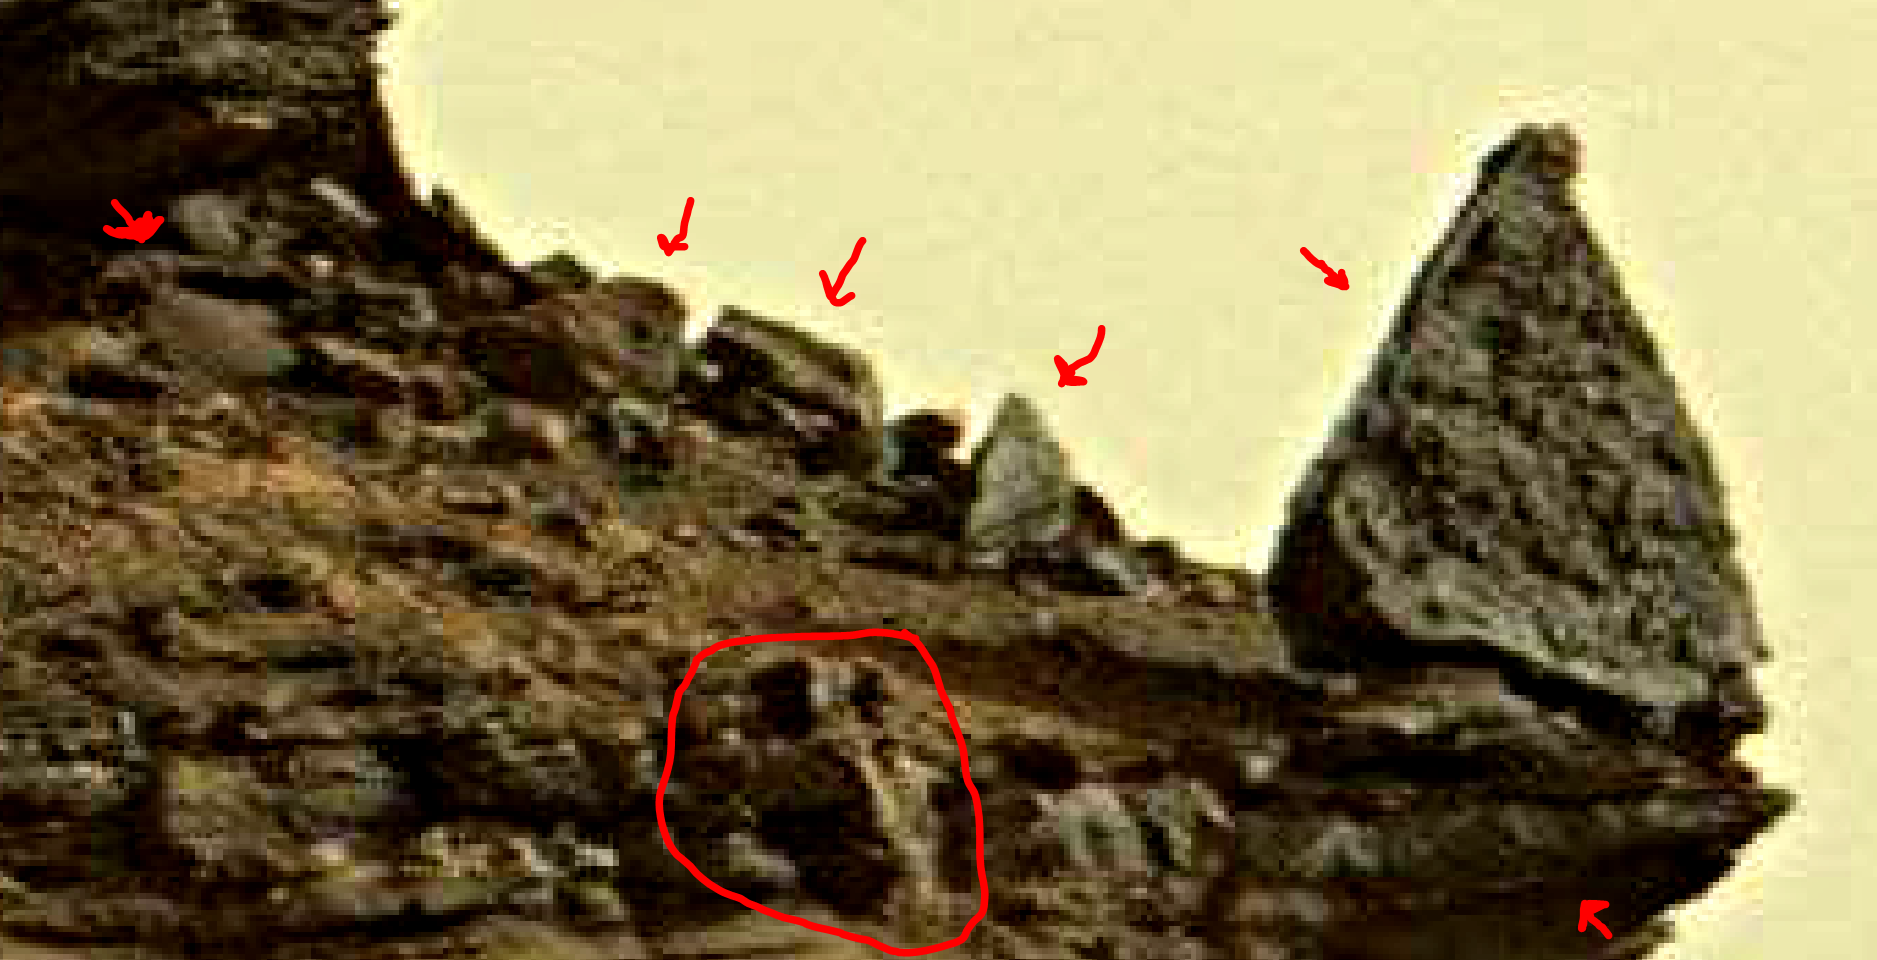 mars sol 1419 anomaly artifacts 2-a was life on mars